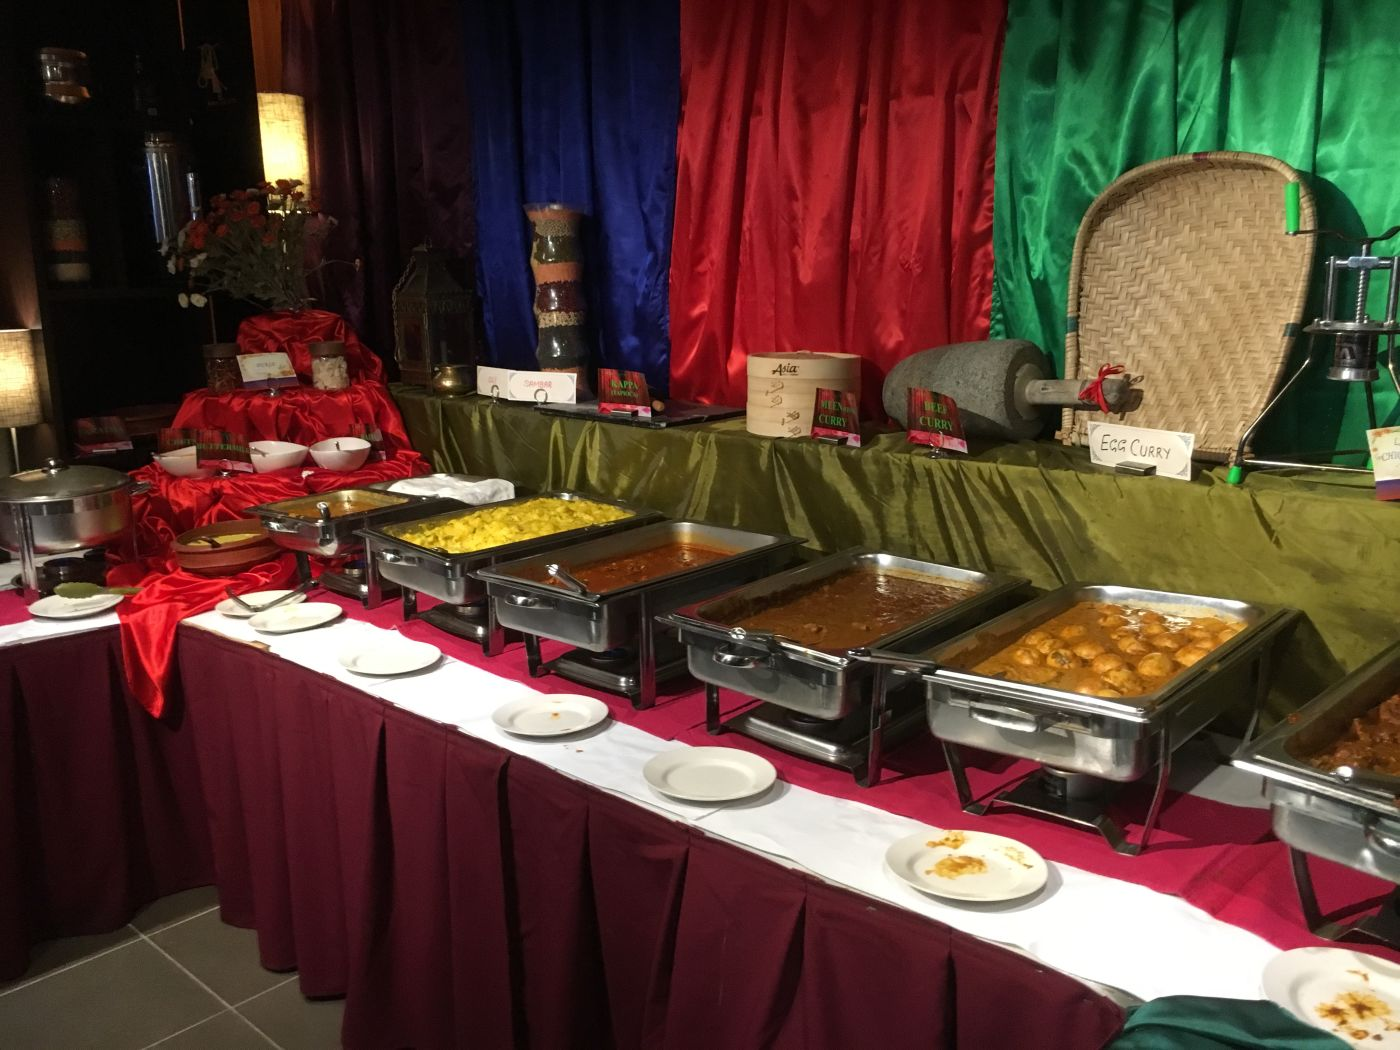 kerala buffet melbourne all you can eat